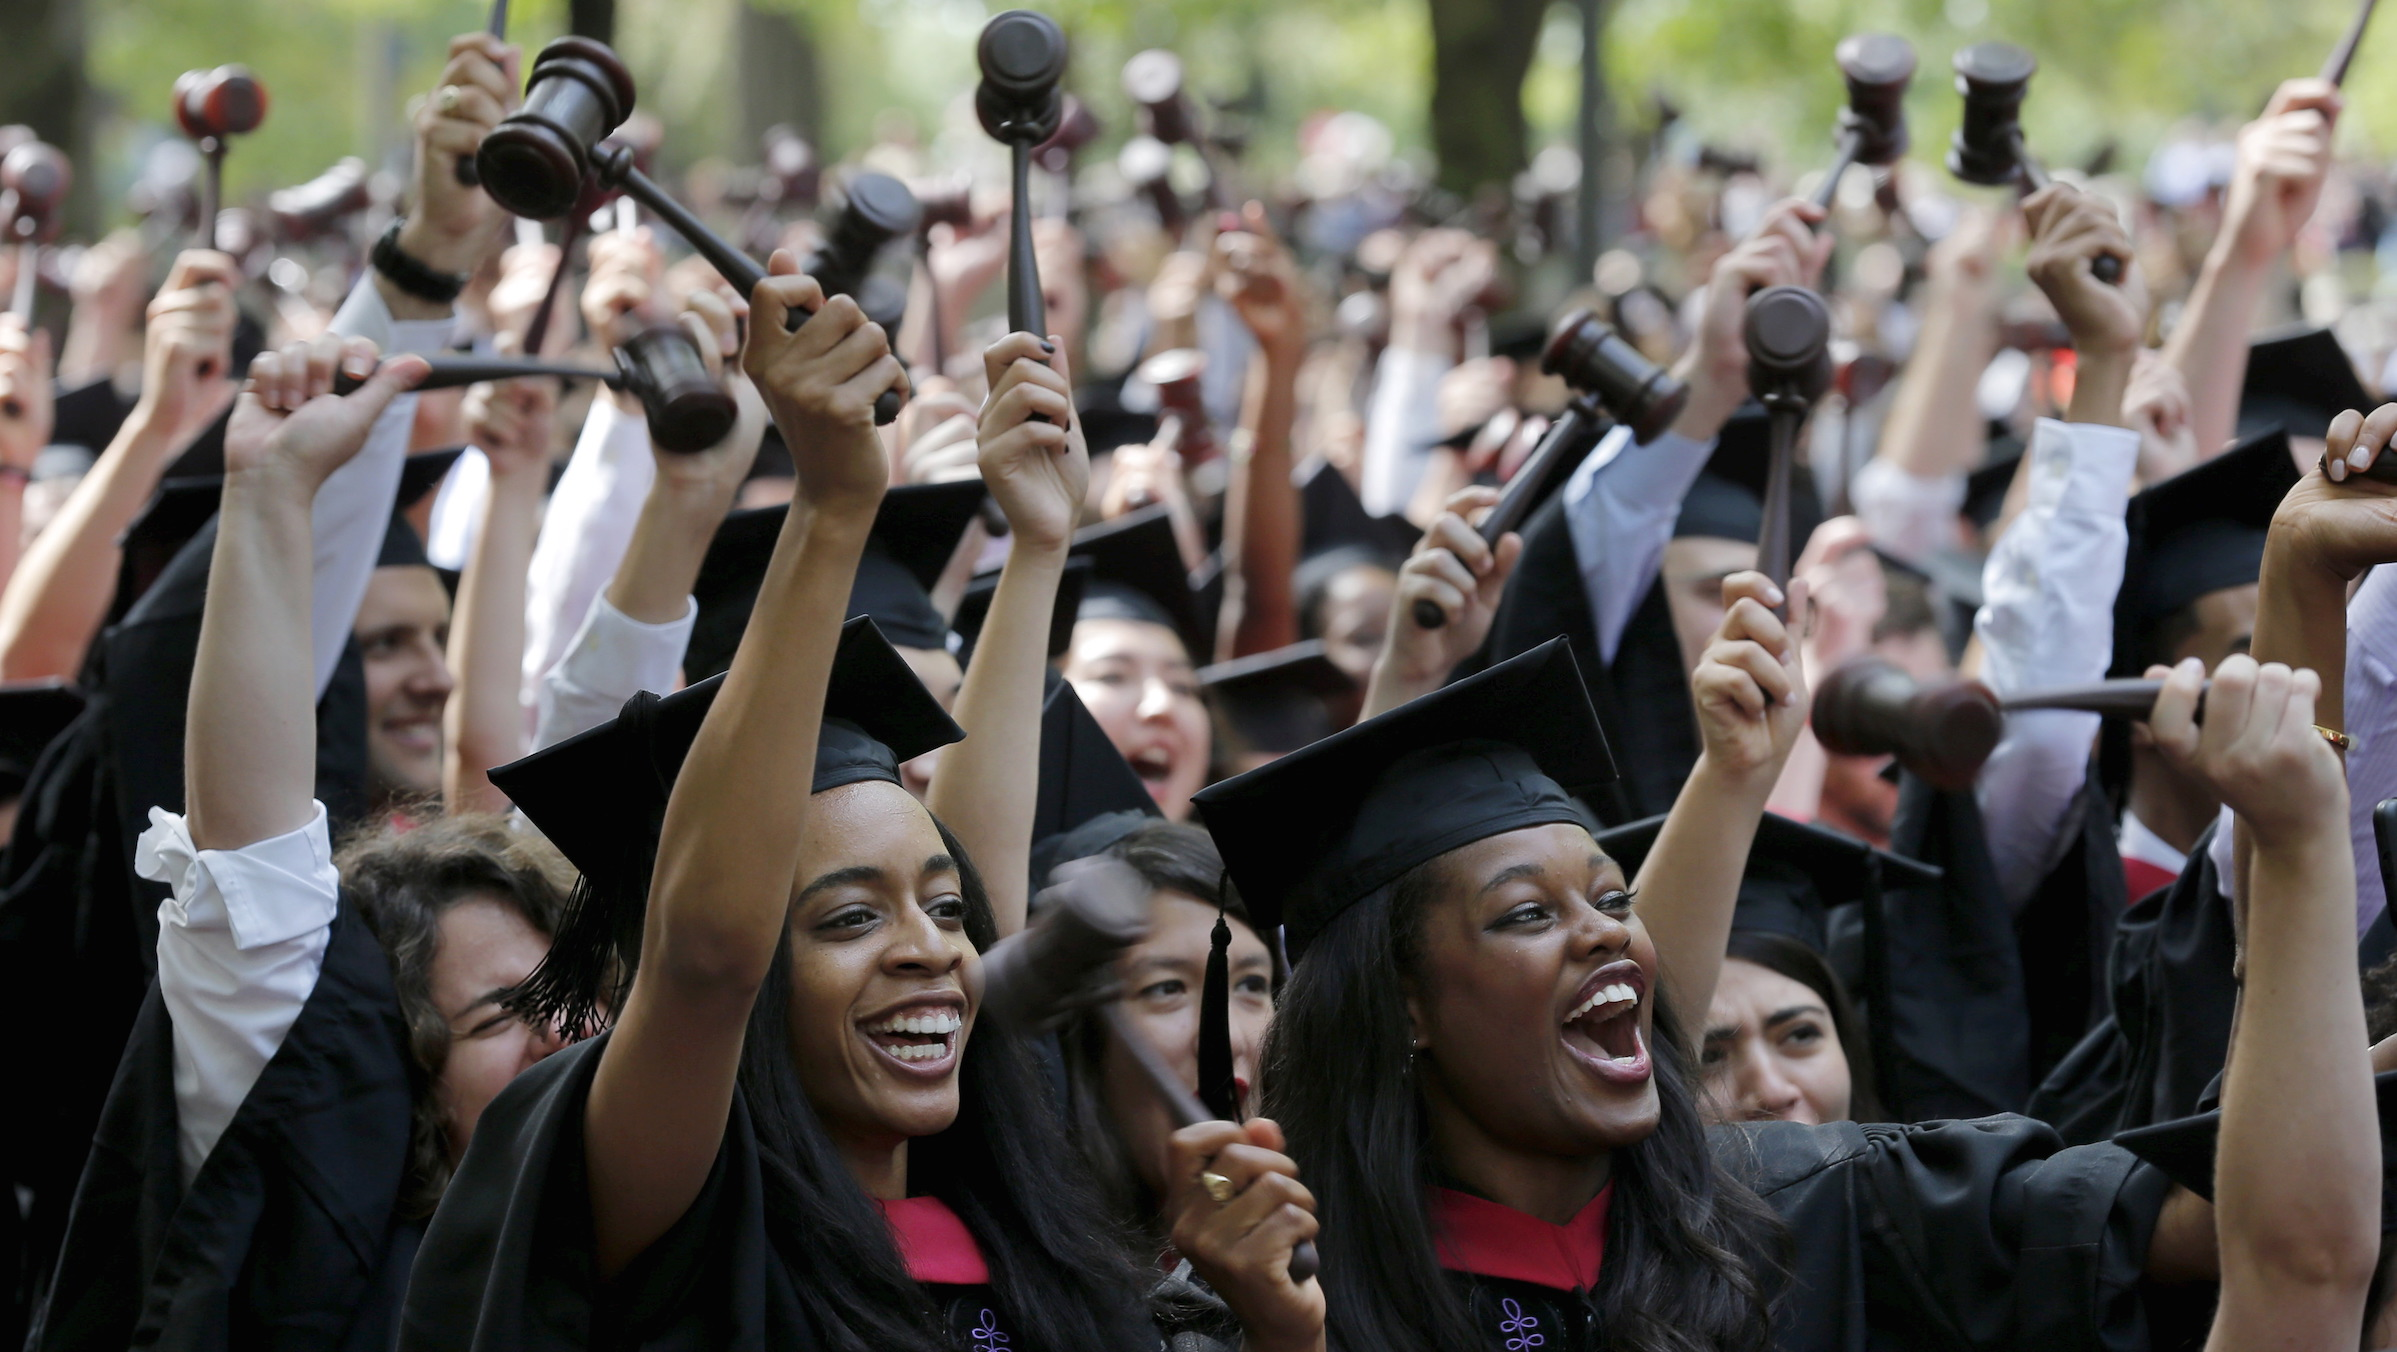 Students graduating from the School of Law cheer as they receive their degrees during the 364th Commencement Exercises at Harvard University in Cambridge, Massachusetts May 28, 2015.    REUTERS/Brian Snyder - RTX1EZC9